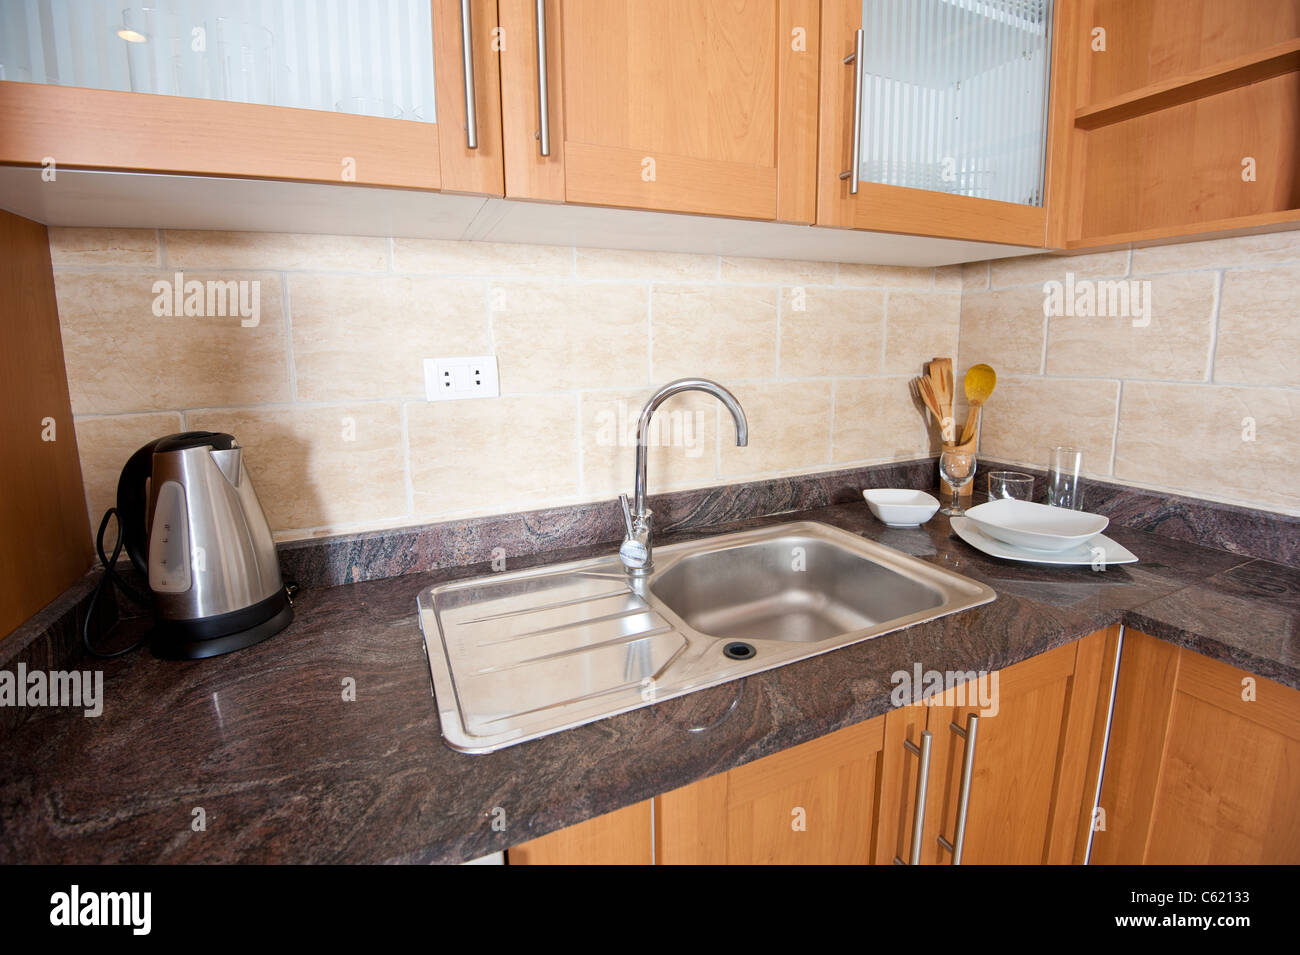 Marble Counter Top And Sink In A Modern Kitchen Stock Photo Alamy